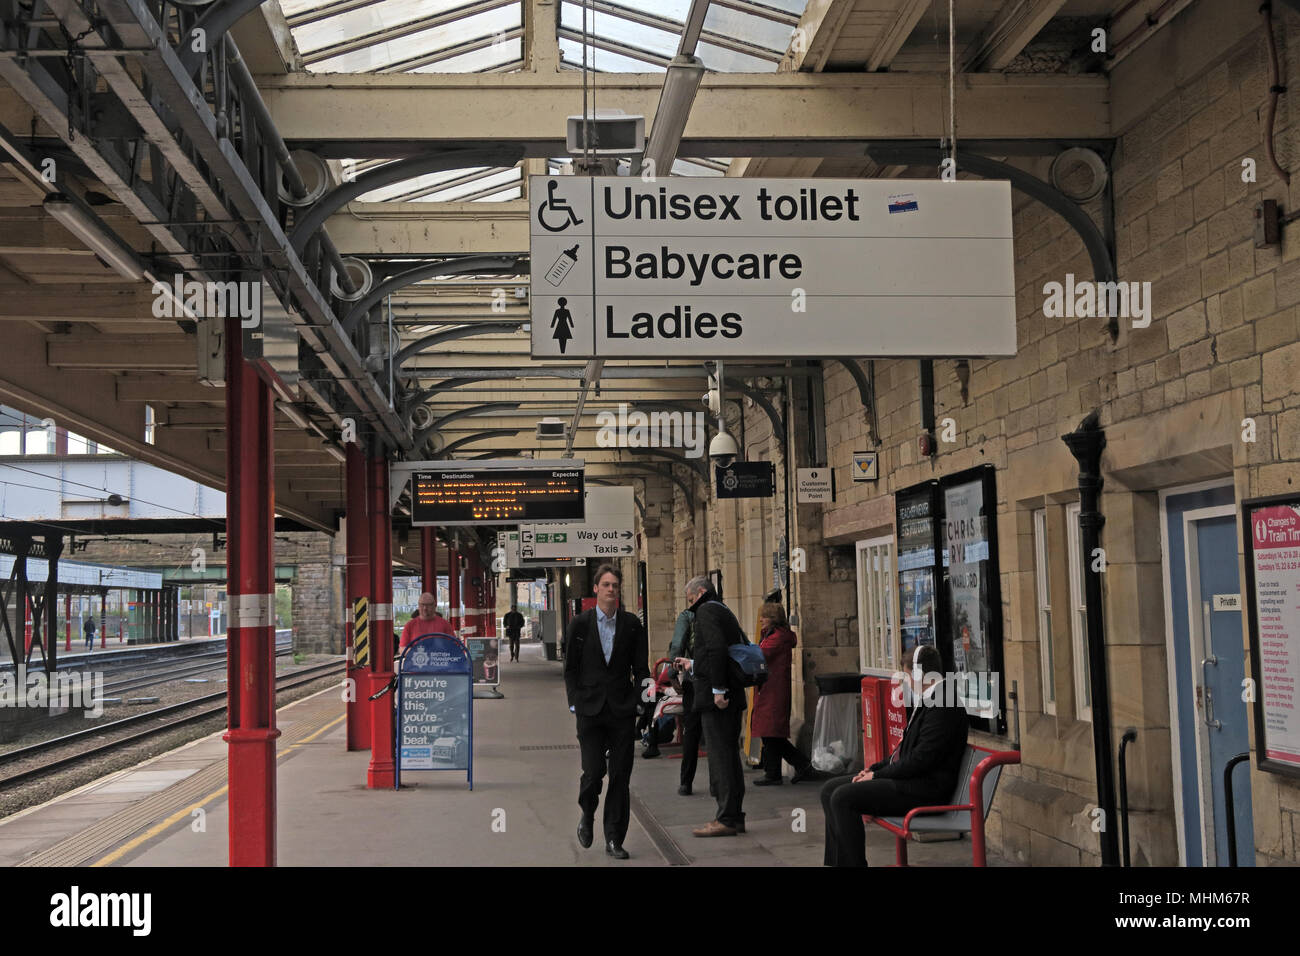 Lancaster Railway Station Unisex Toilet Babycare Ladies Facilities Lancashire England Uk Stock Photo Alamy